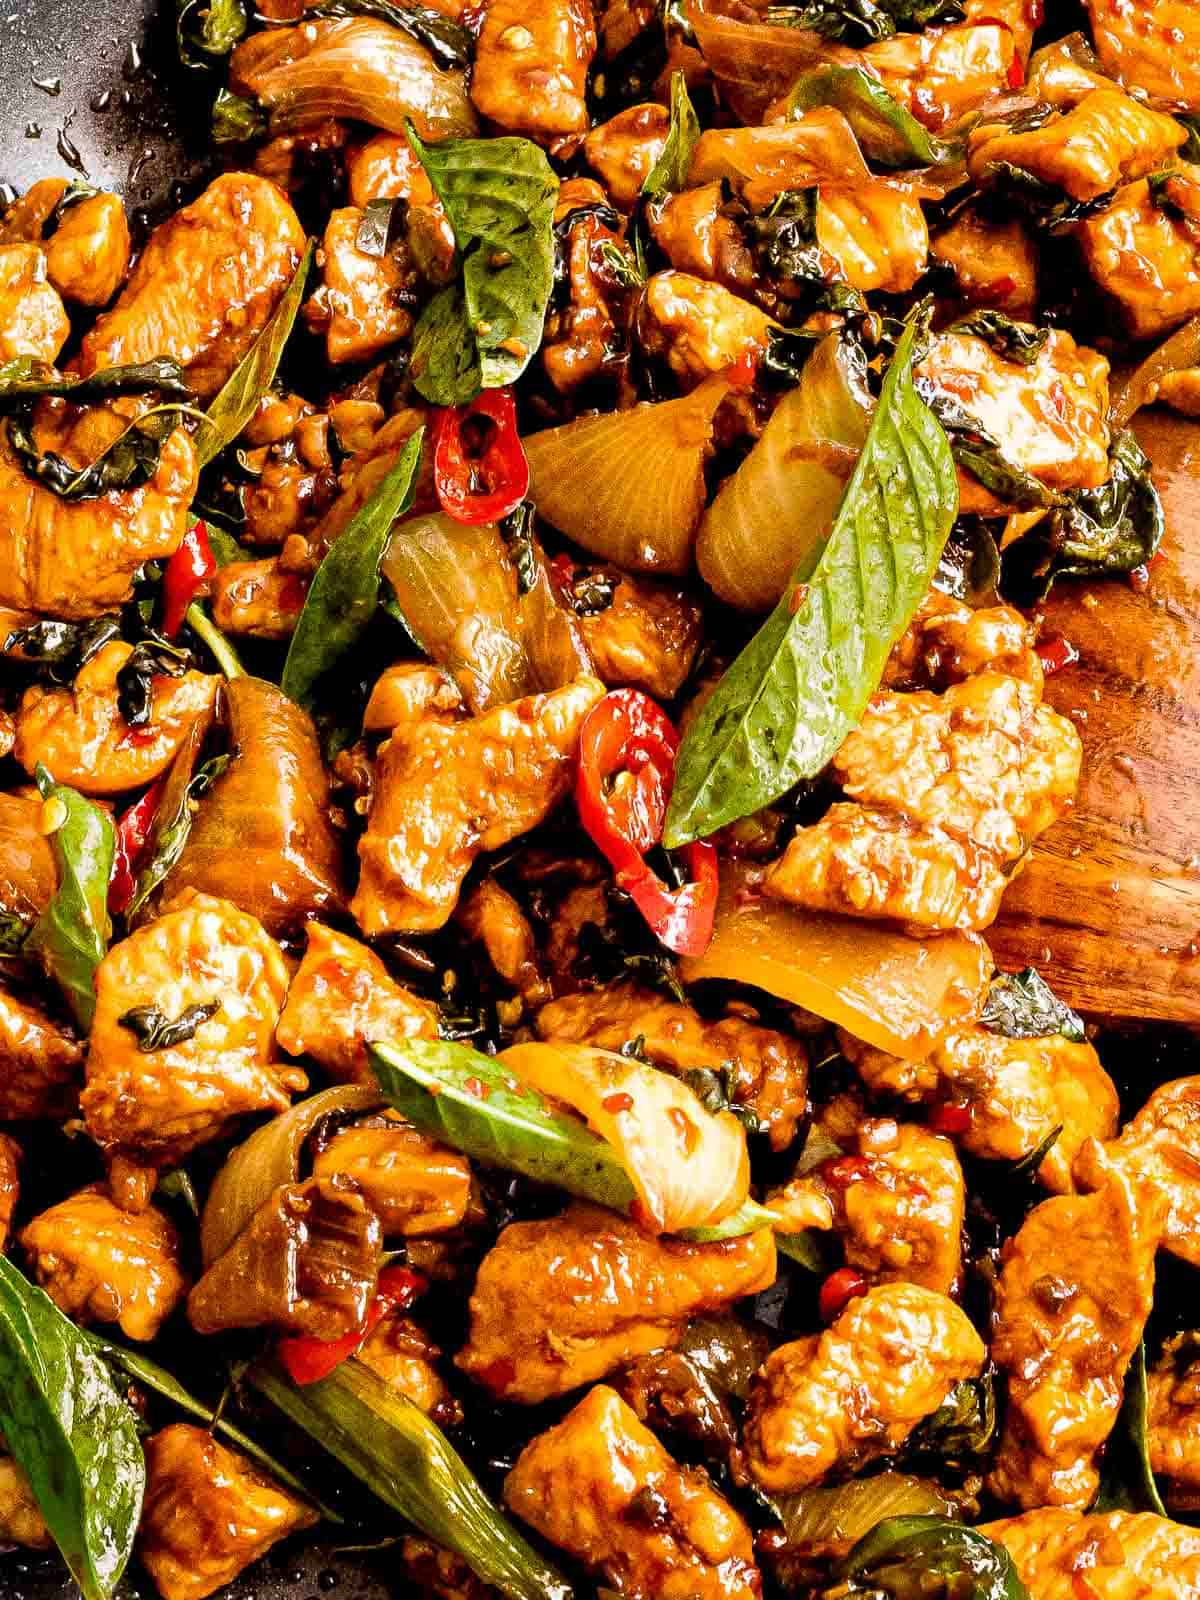 Thai basil chicken (pad krapow gai) with red chili peppers.